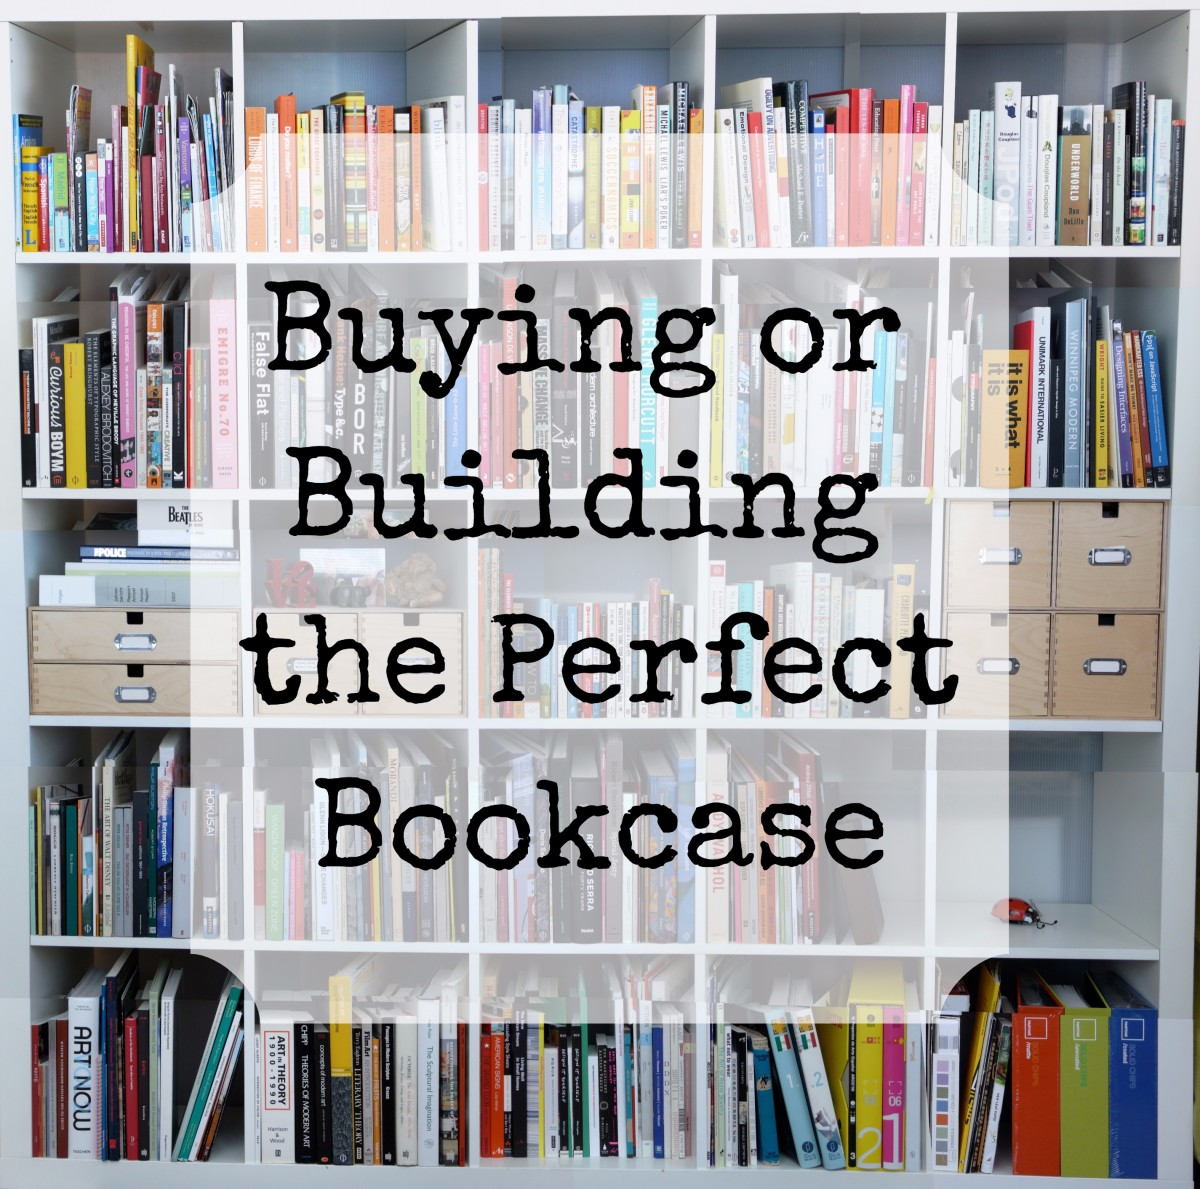 Which Bookcase Do You Need? Calculate the Capacity of a Book Shelf